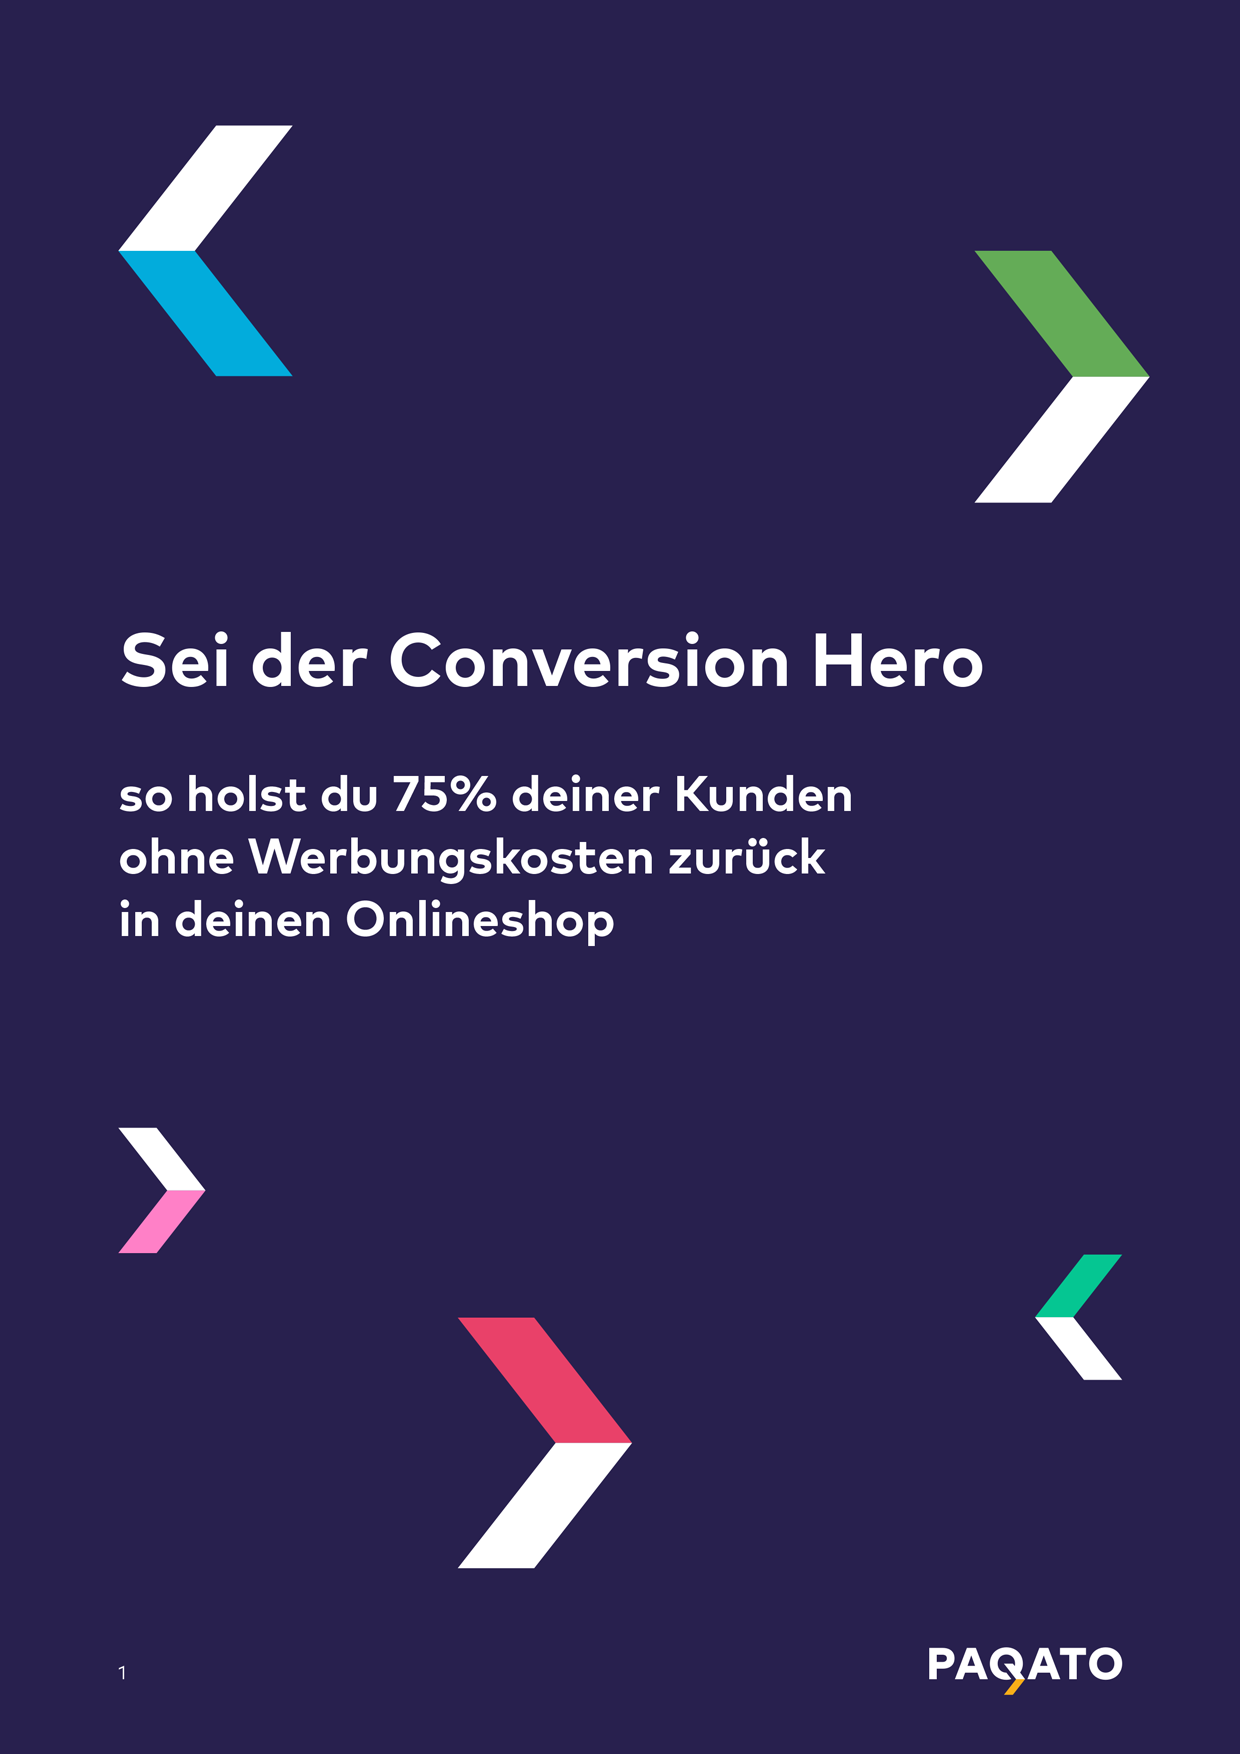 Sei der Conversion Hero!